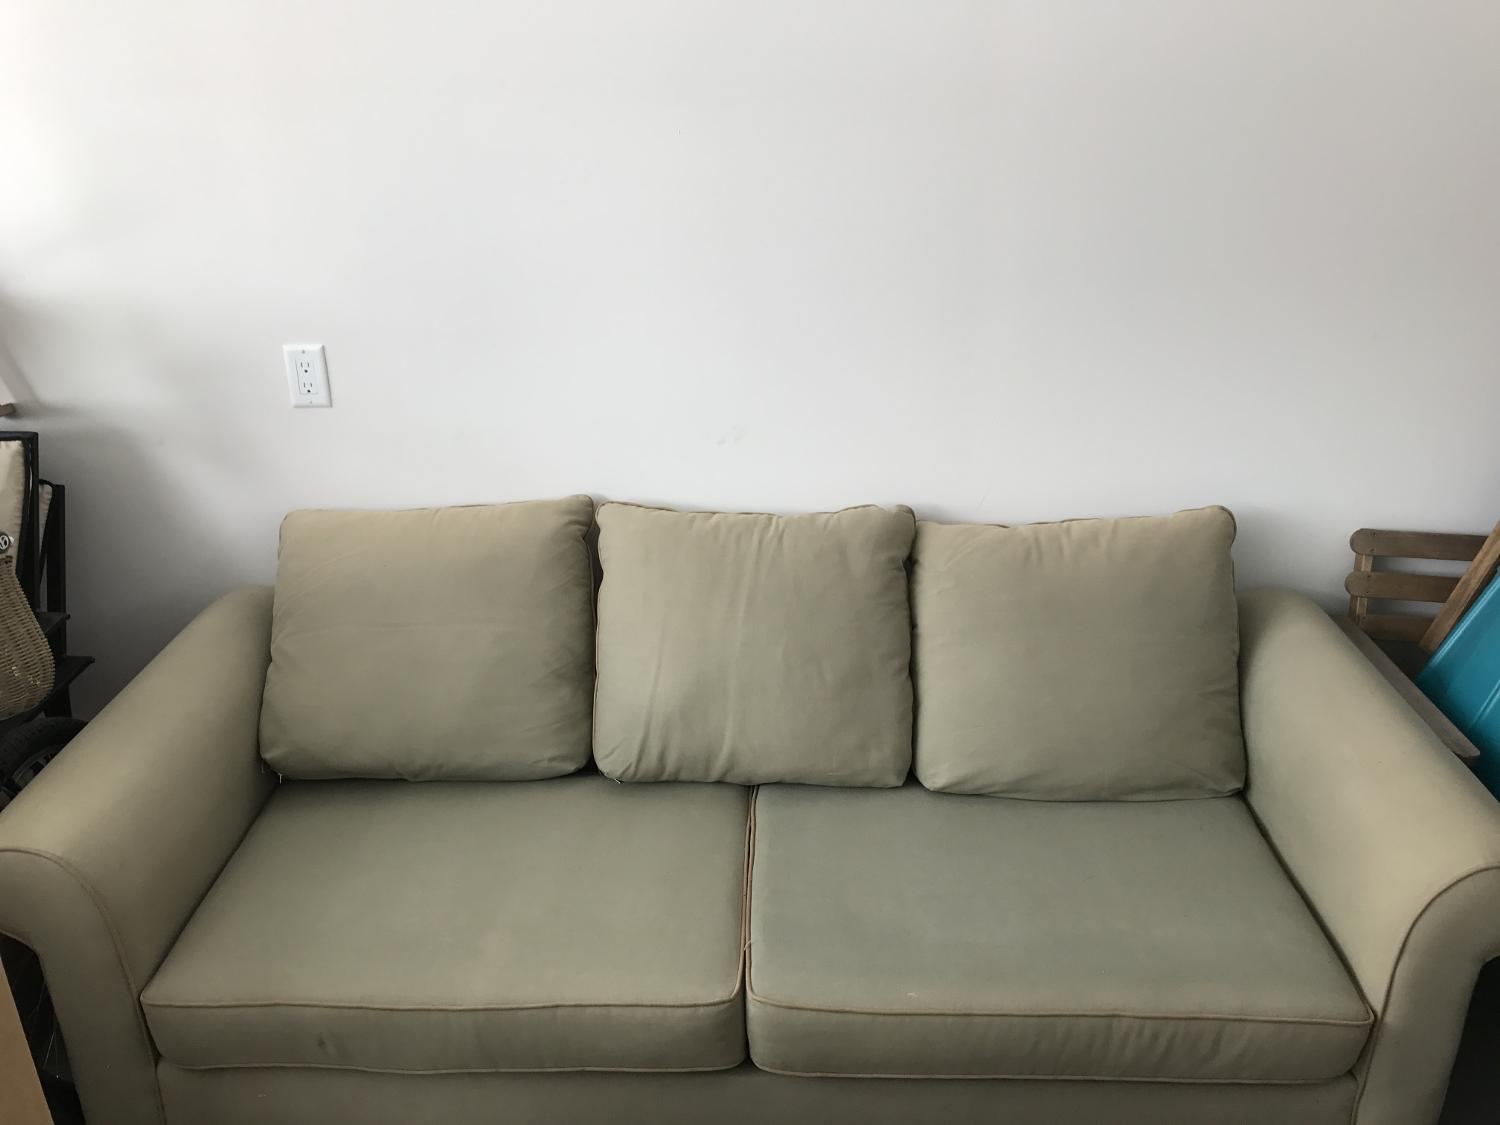 Find More Ikea Sofa 3 Seater For Sale At Up To 90 Off